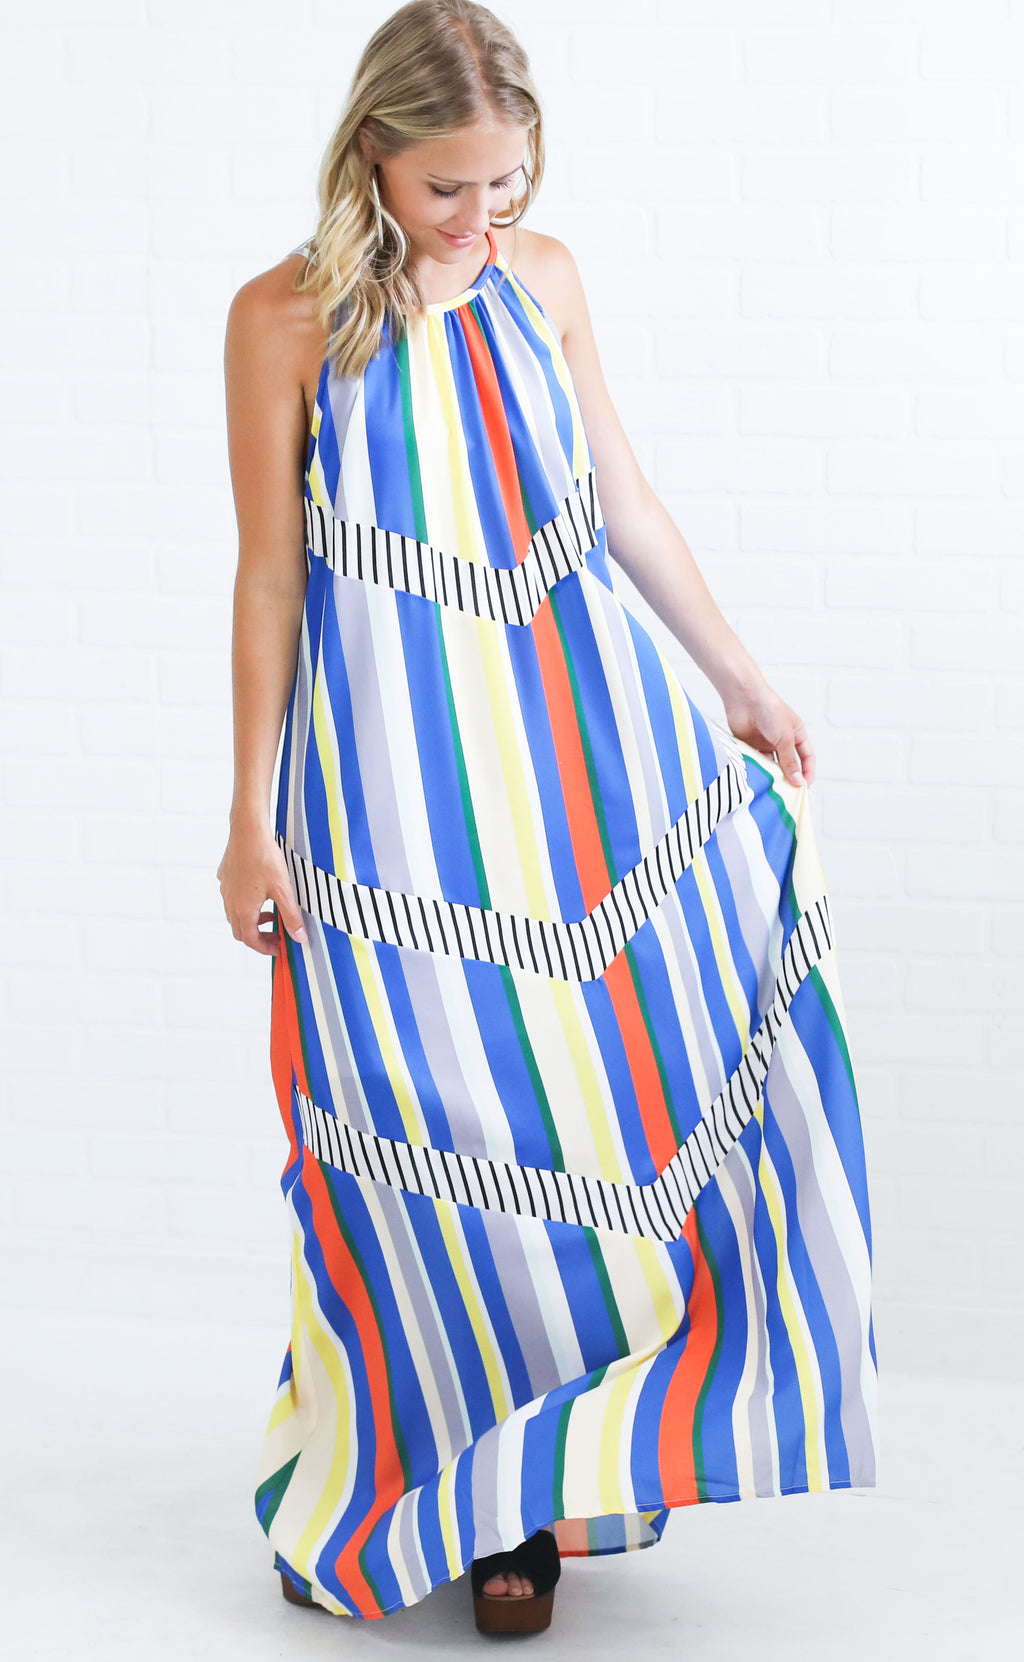 statement piece maxi dress